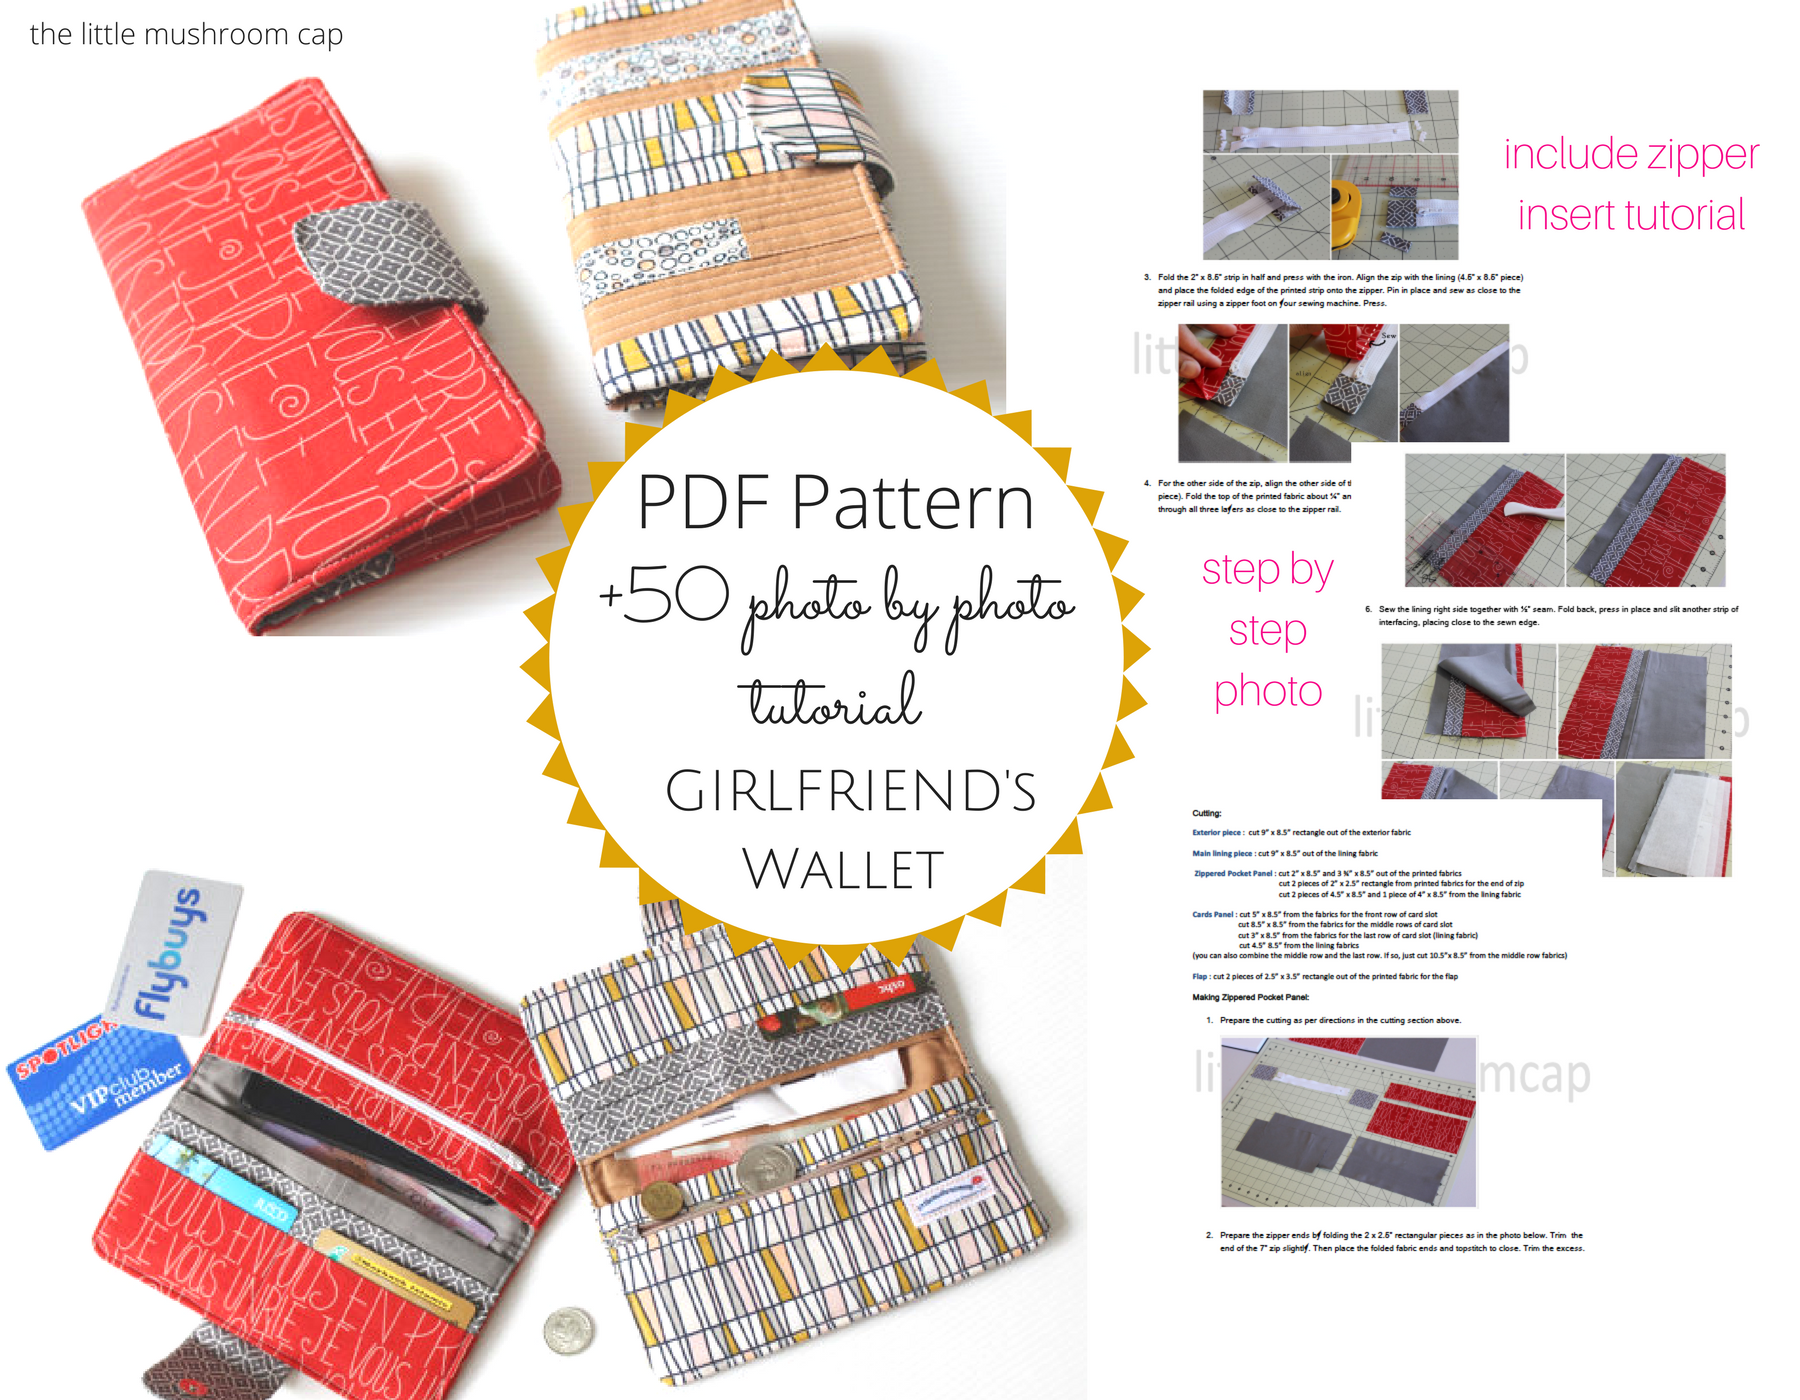 ed08a37f772 Girl Friend s Wallet Sewing   +50 Photo step by step tutorial - Payhip